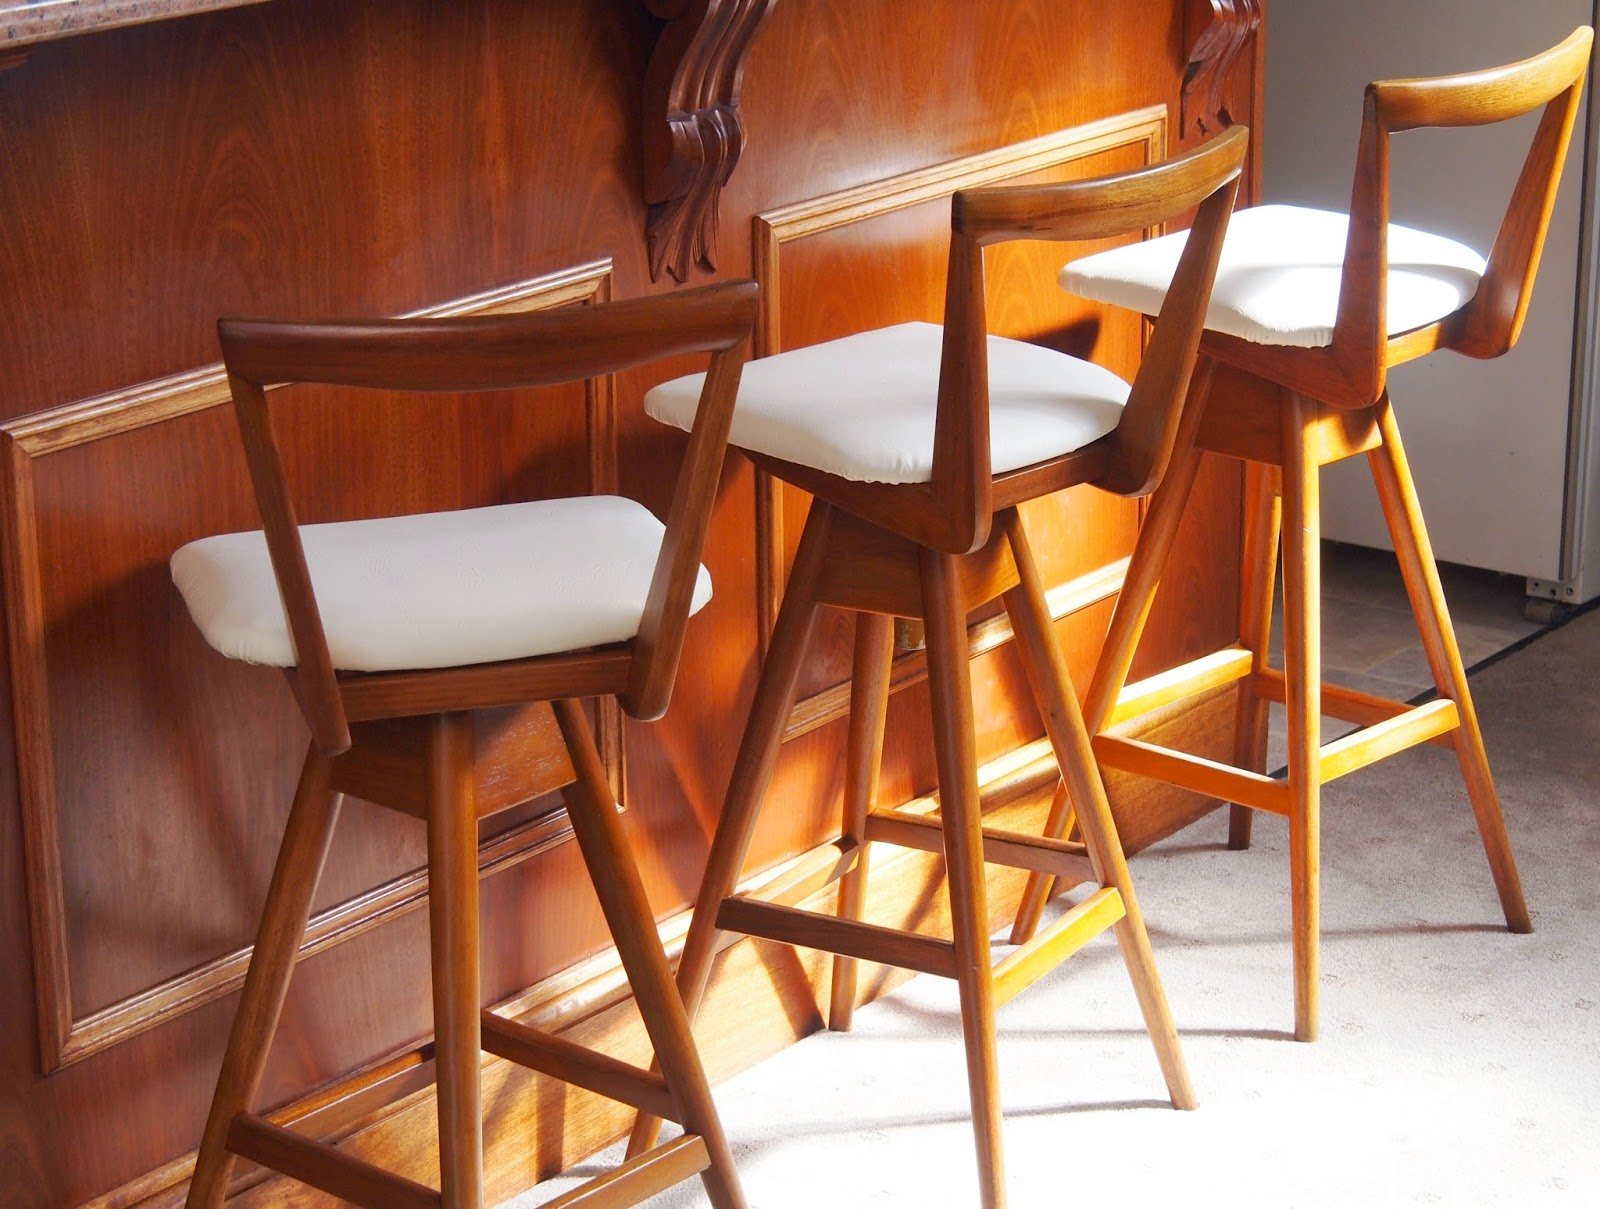 bar stools re-purposed